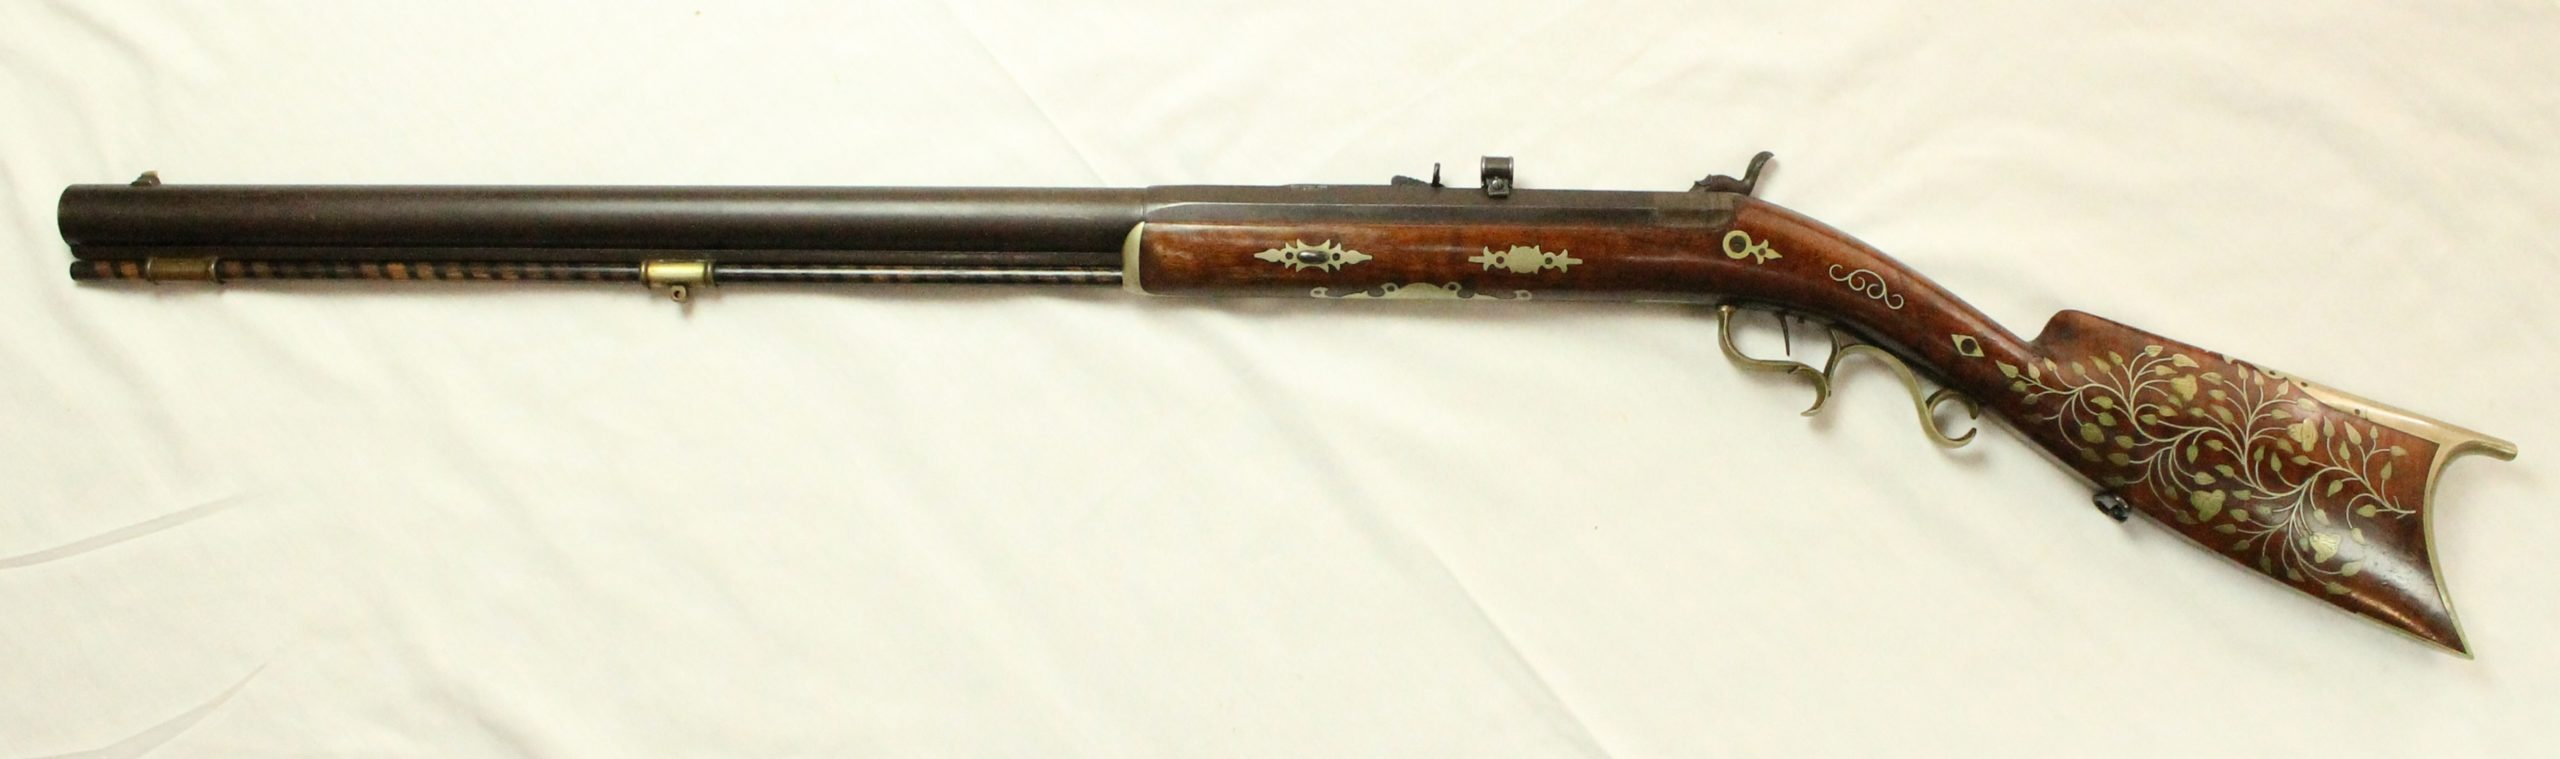 A percussion rifle with gold decorations and leaf and flower inlaid decorations along the butt of the firearm.